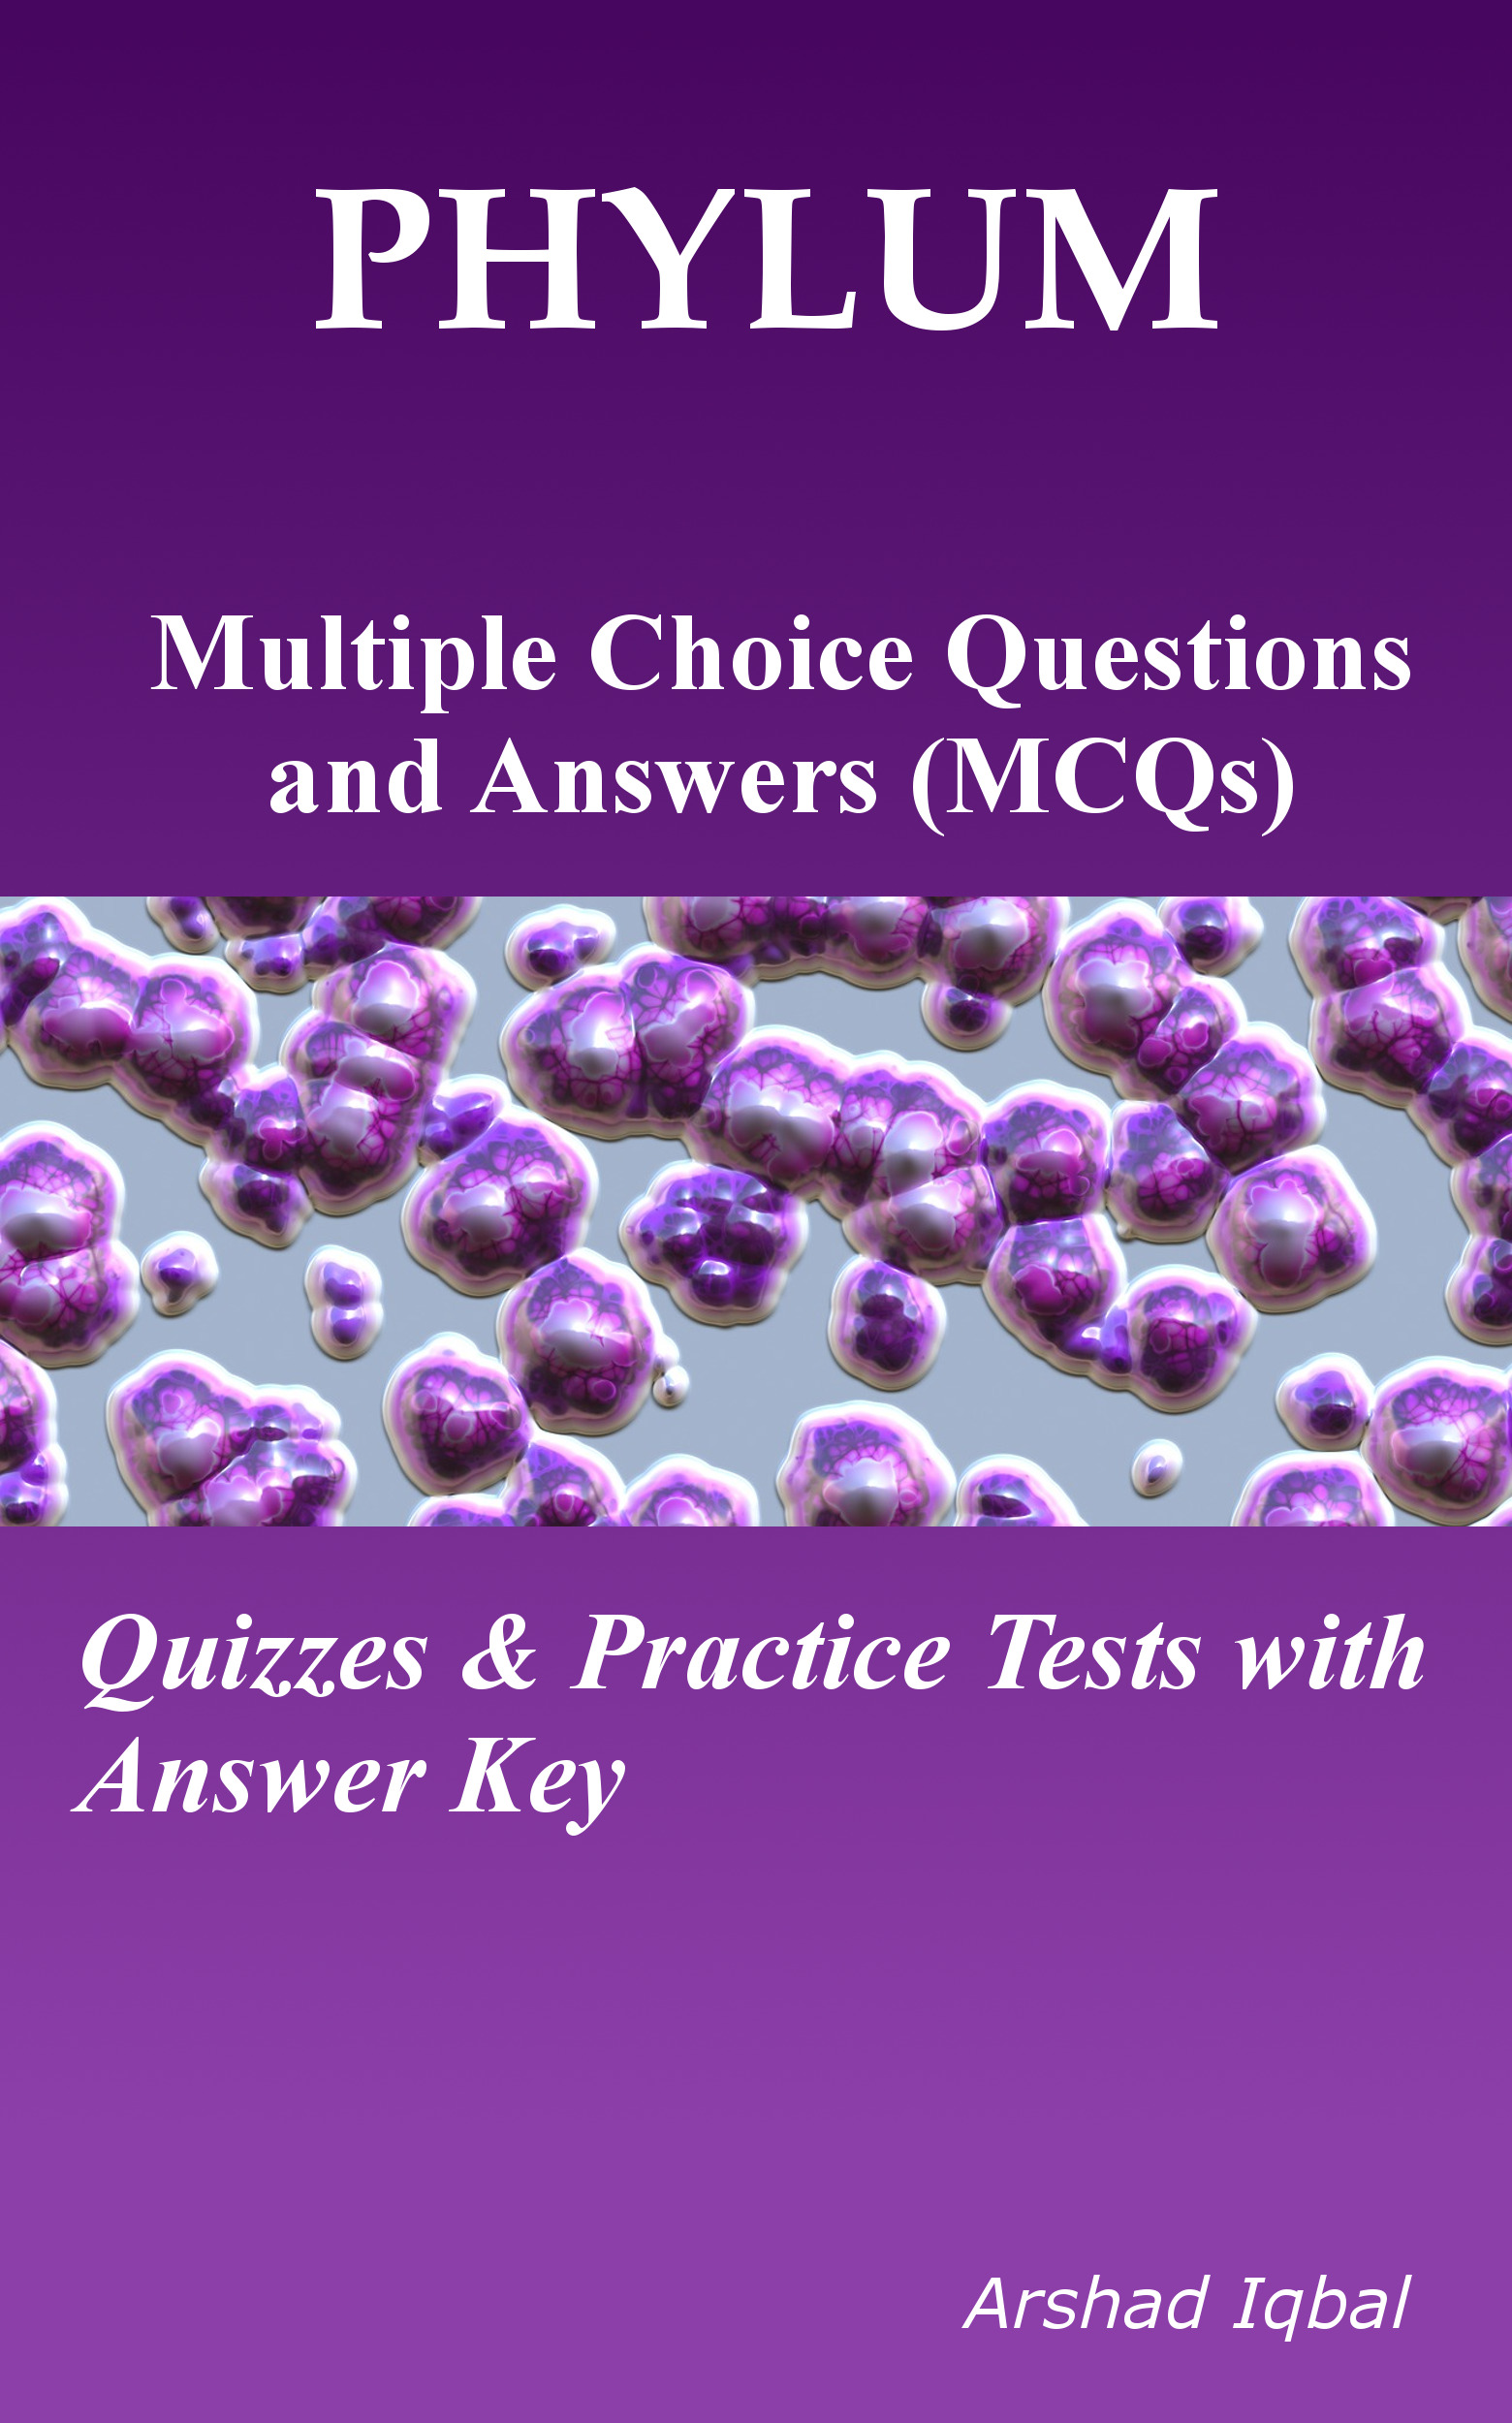 Phylum Multiple Choice Questions and Answers (MCQs): Quizzes & Practice Tests with Answer Key